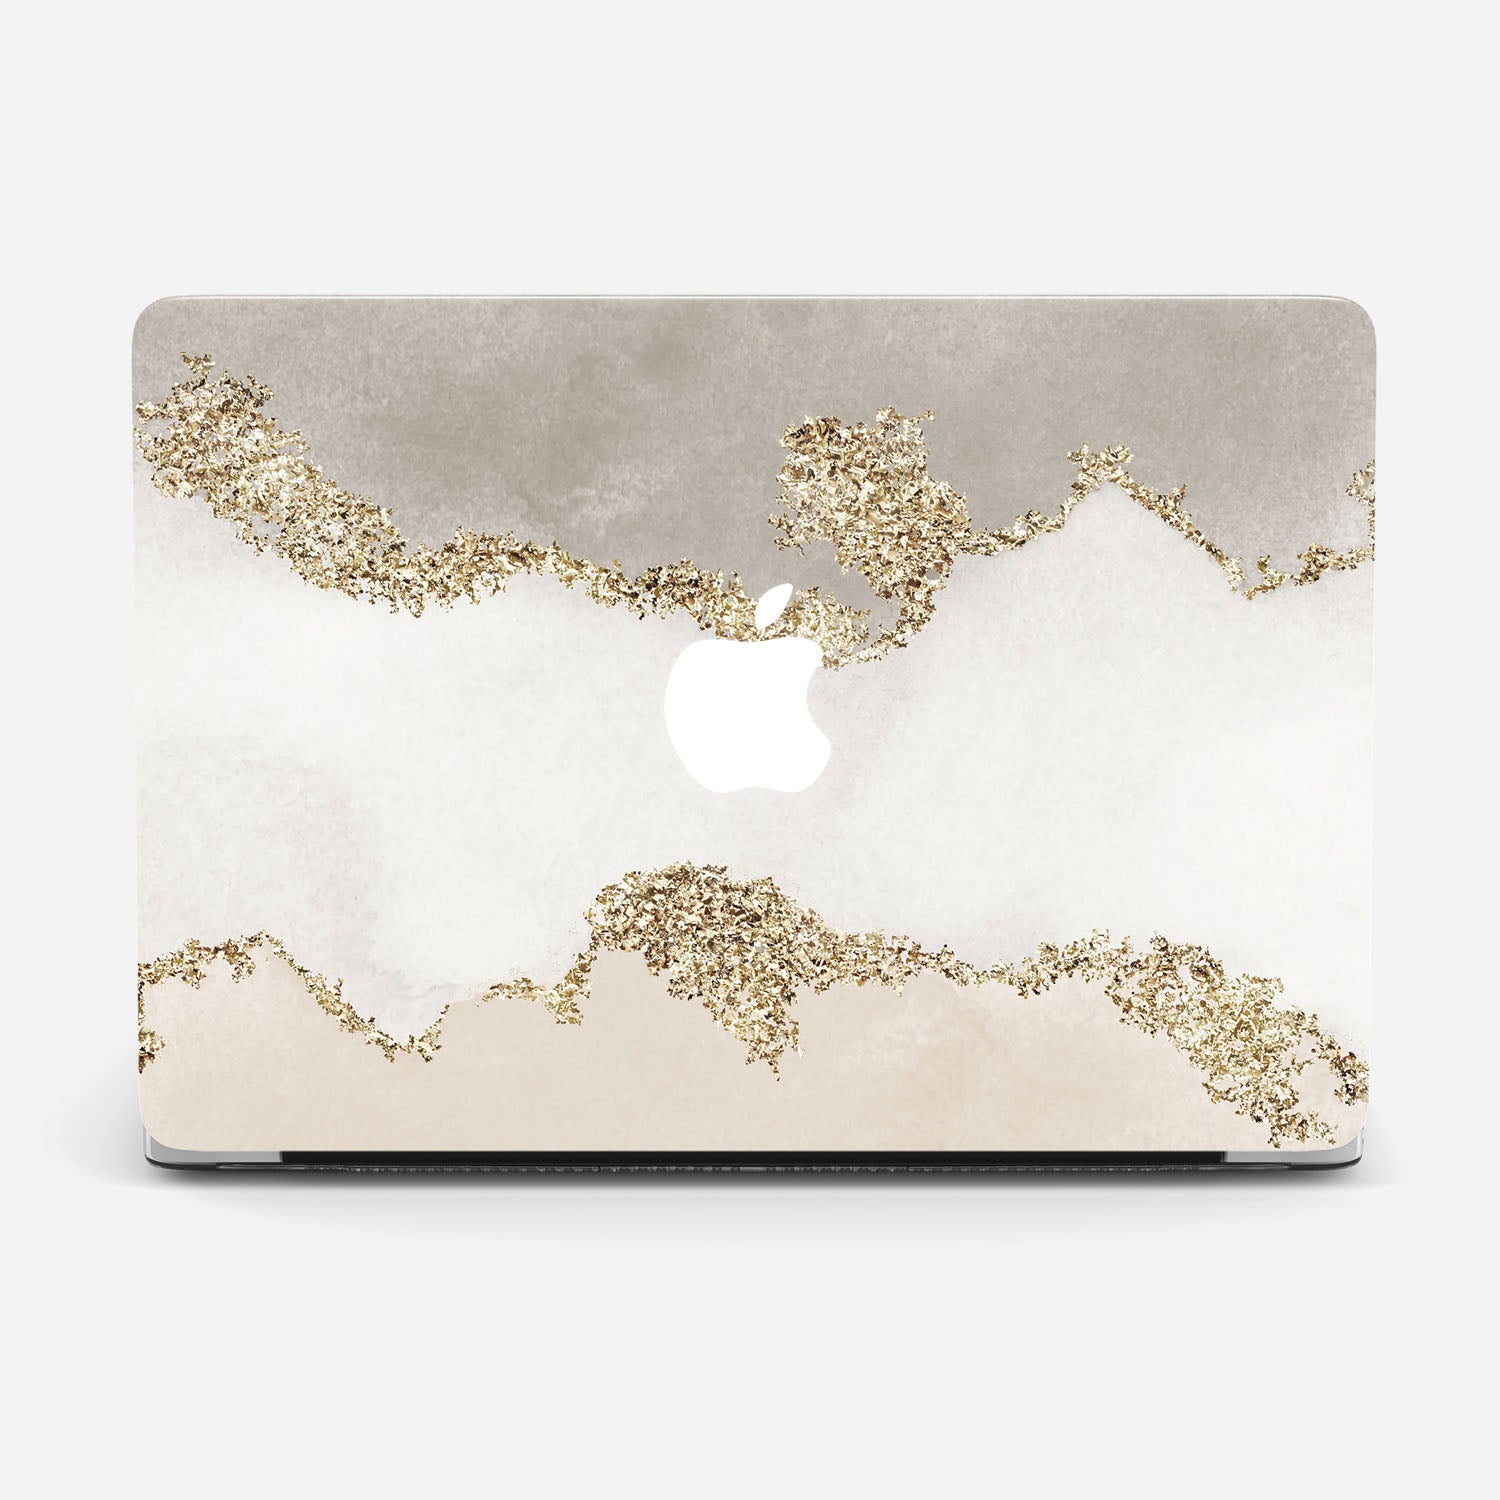 GOLDEN COAST Macbook 12 inch skins | Pigtou